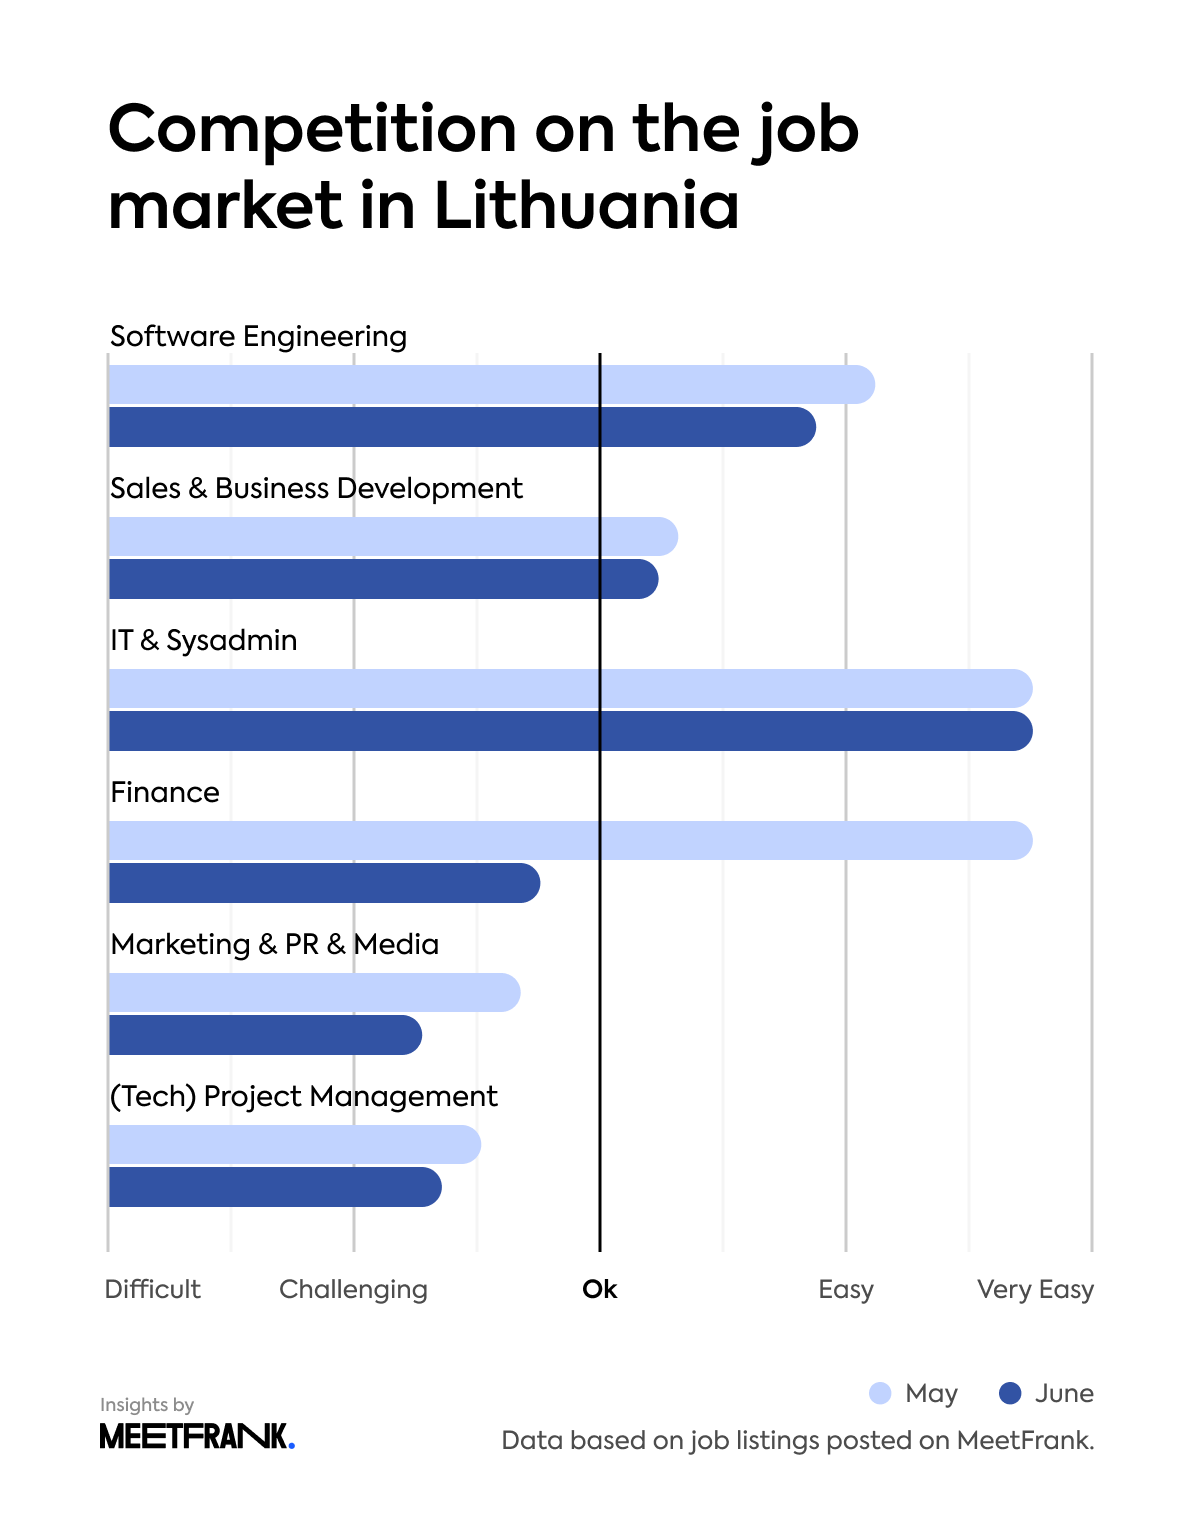 Market competition in Lithuania, May vs July